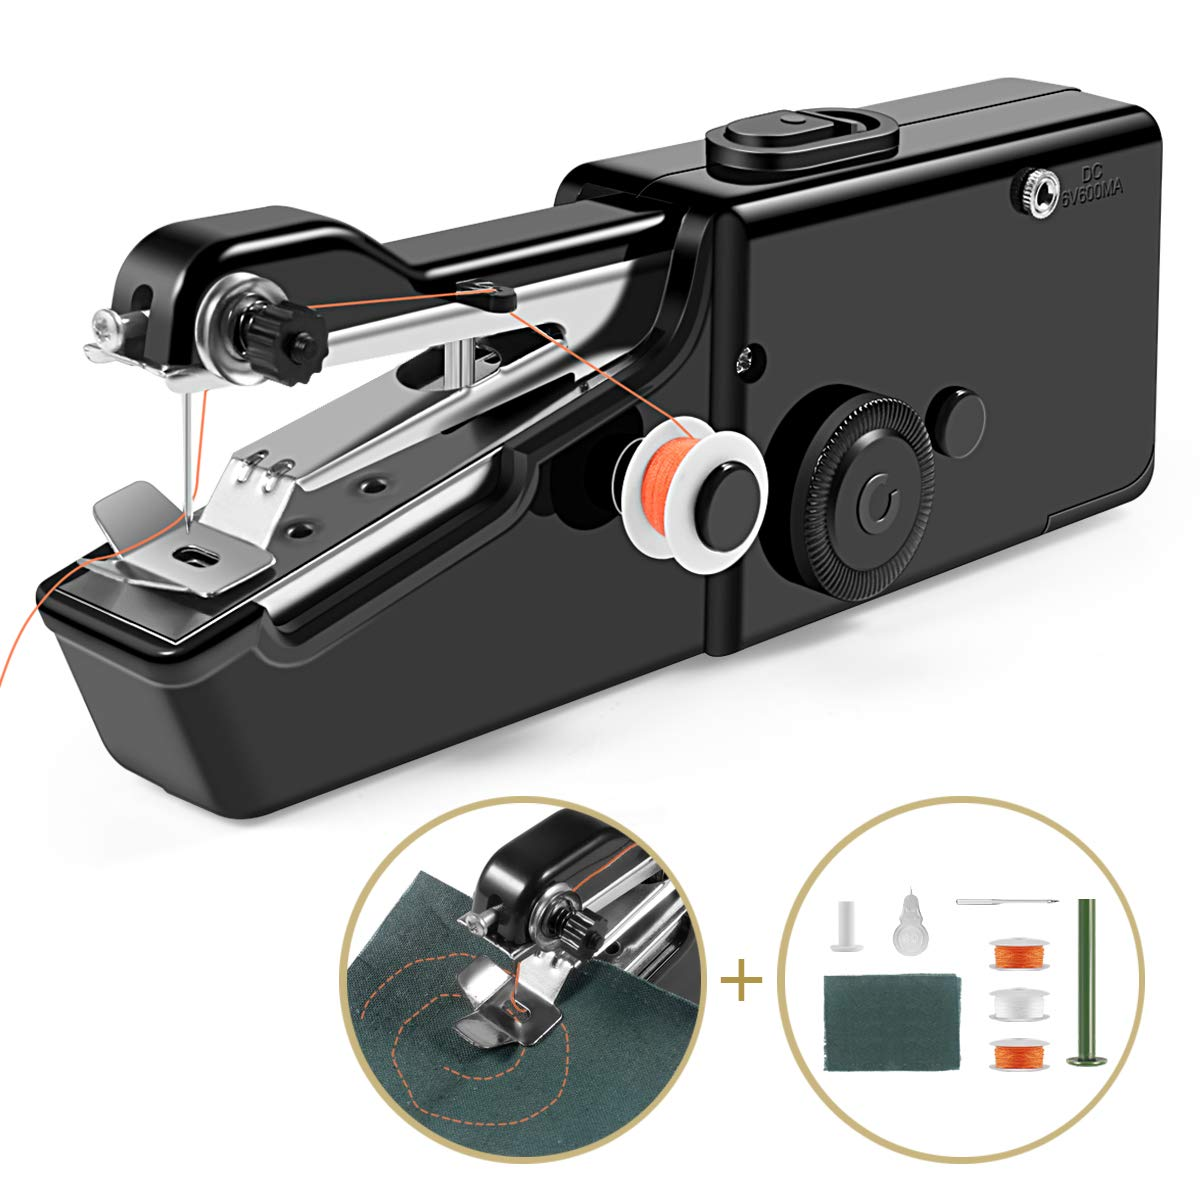 Handheld Sewing Machine Cordless Handheld Electric Sewing Machine Quick Handy Stitch for Home or Travel use